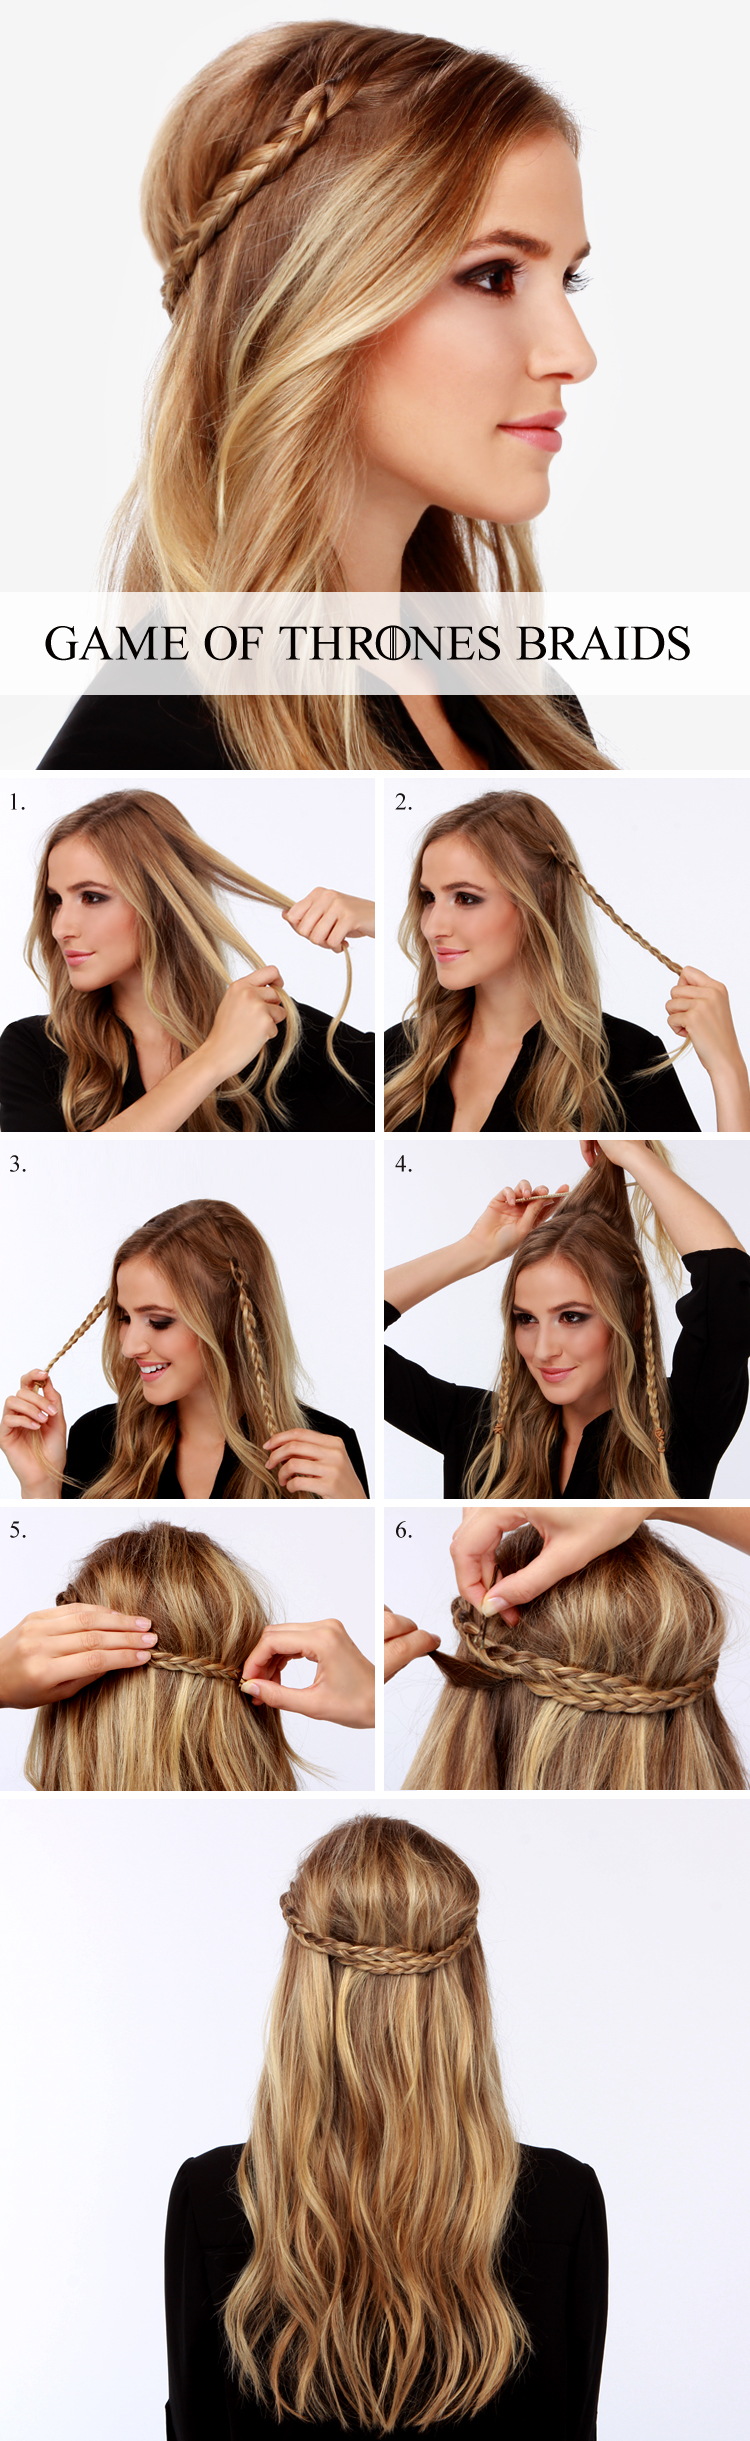 Lulus How-To: Game of Thrones Braid Tutorial! at LuLus.com!